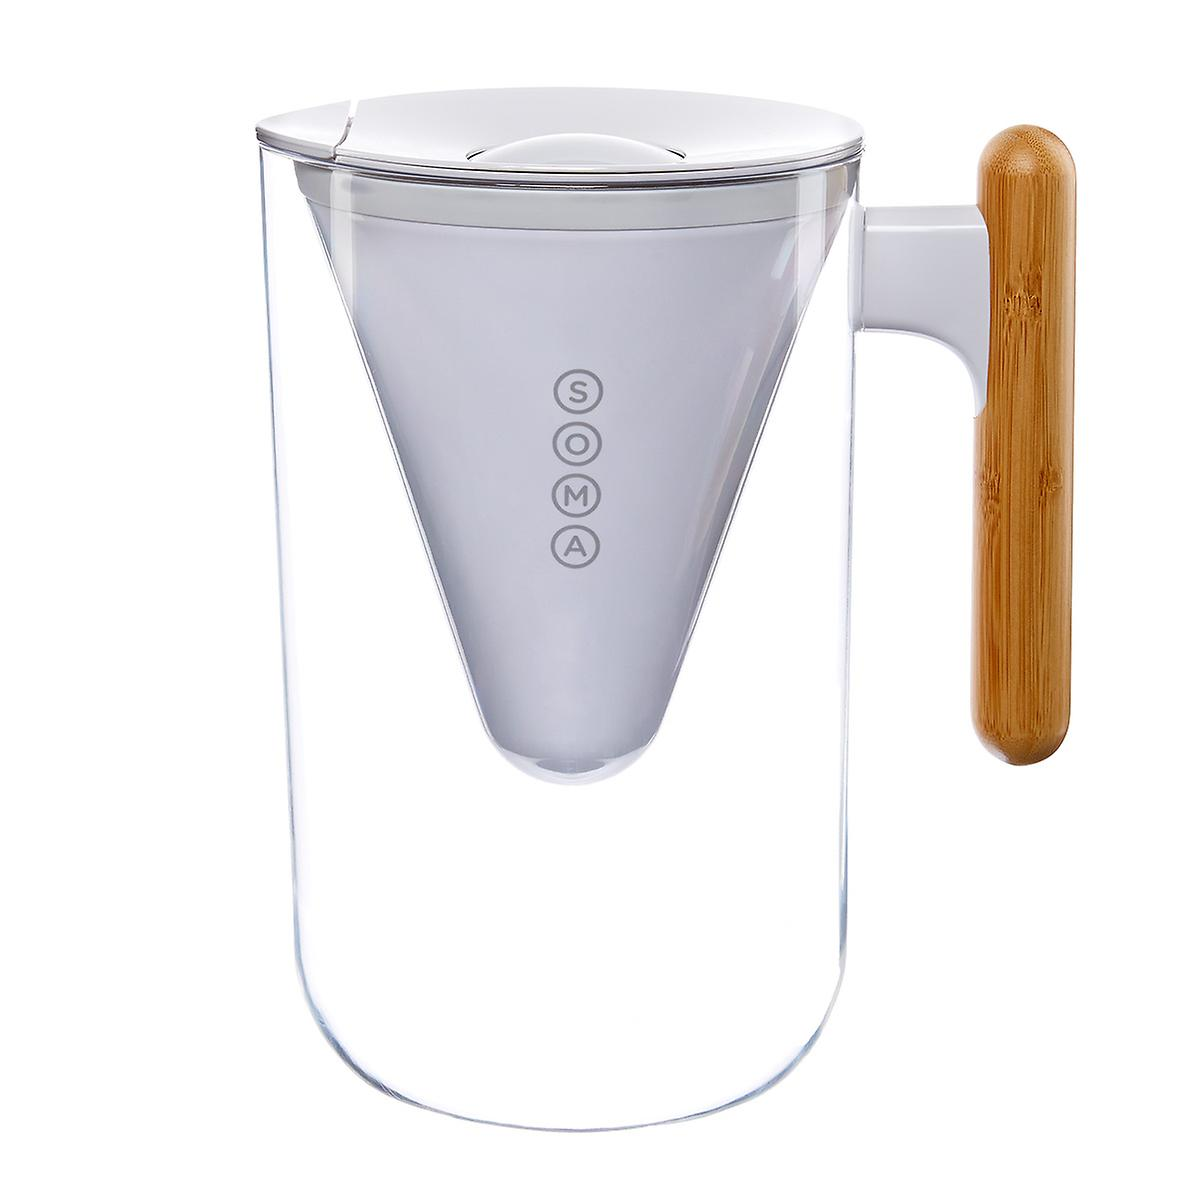 Soma 10 Cup Filtered Water Pitcher